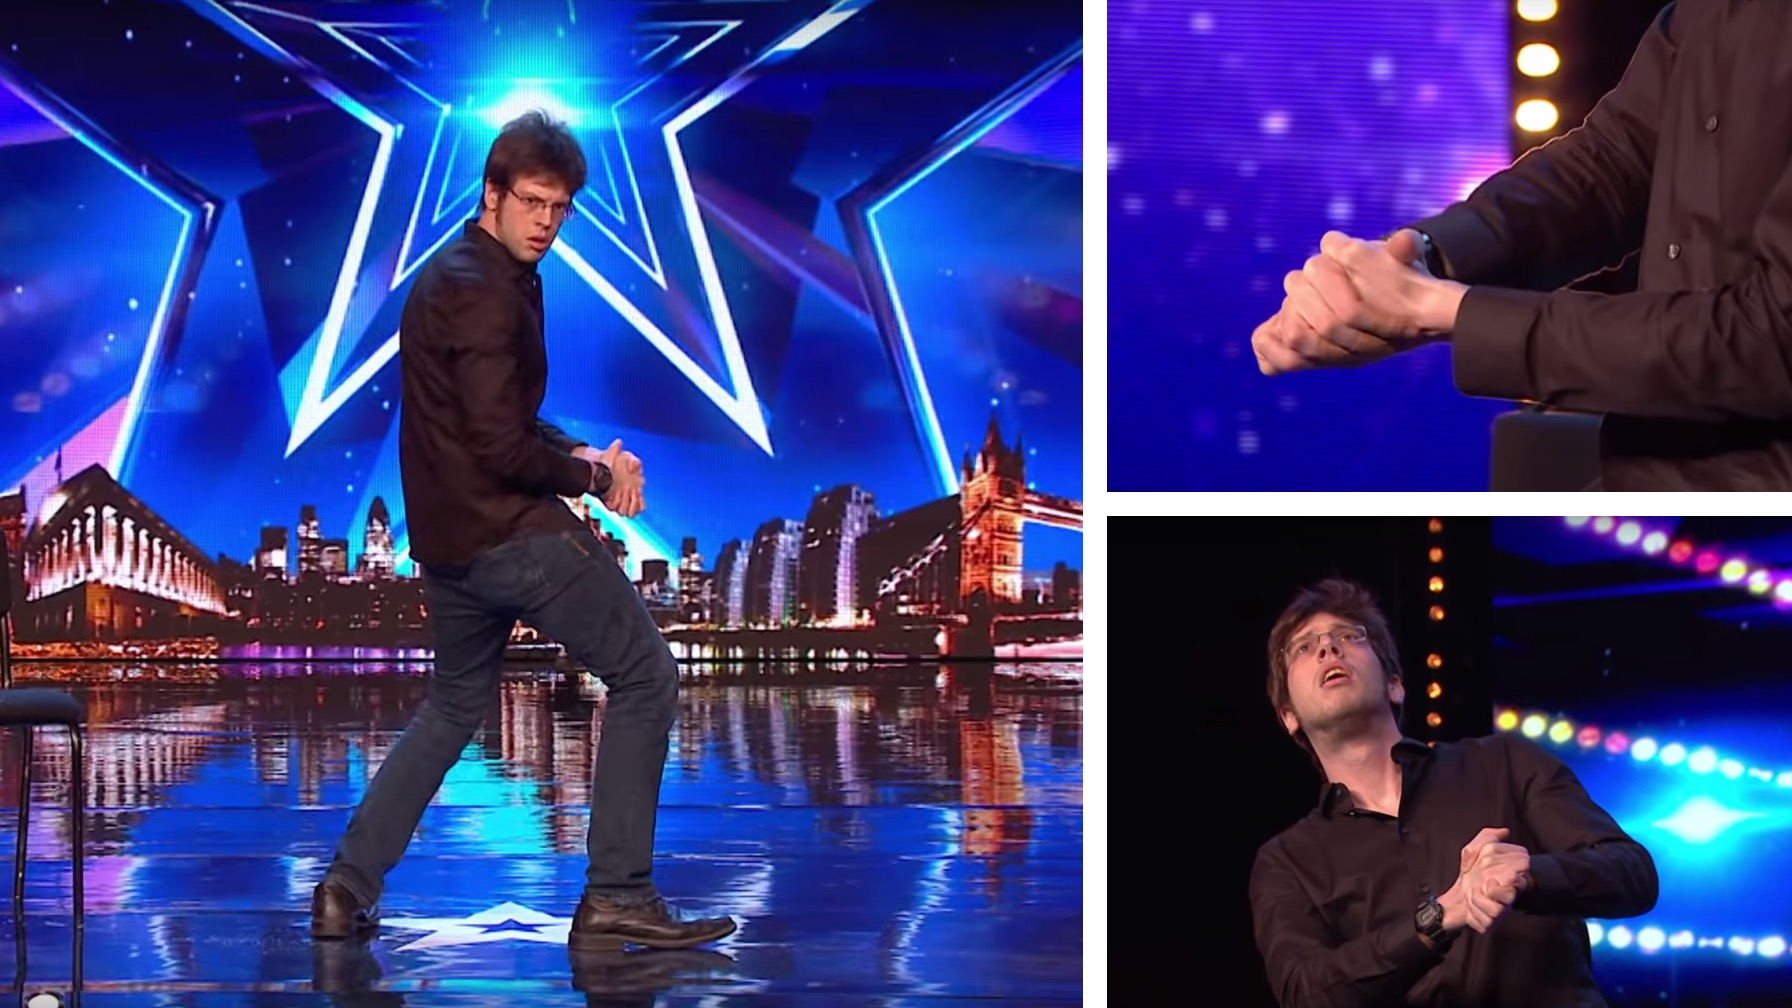 Britain's Got Talent Contestant Hand-Farts His Way to Fame With Classic Songs [WATCH]